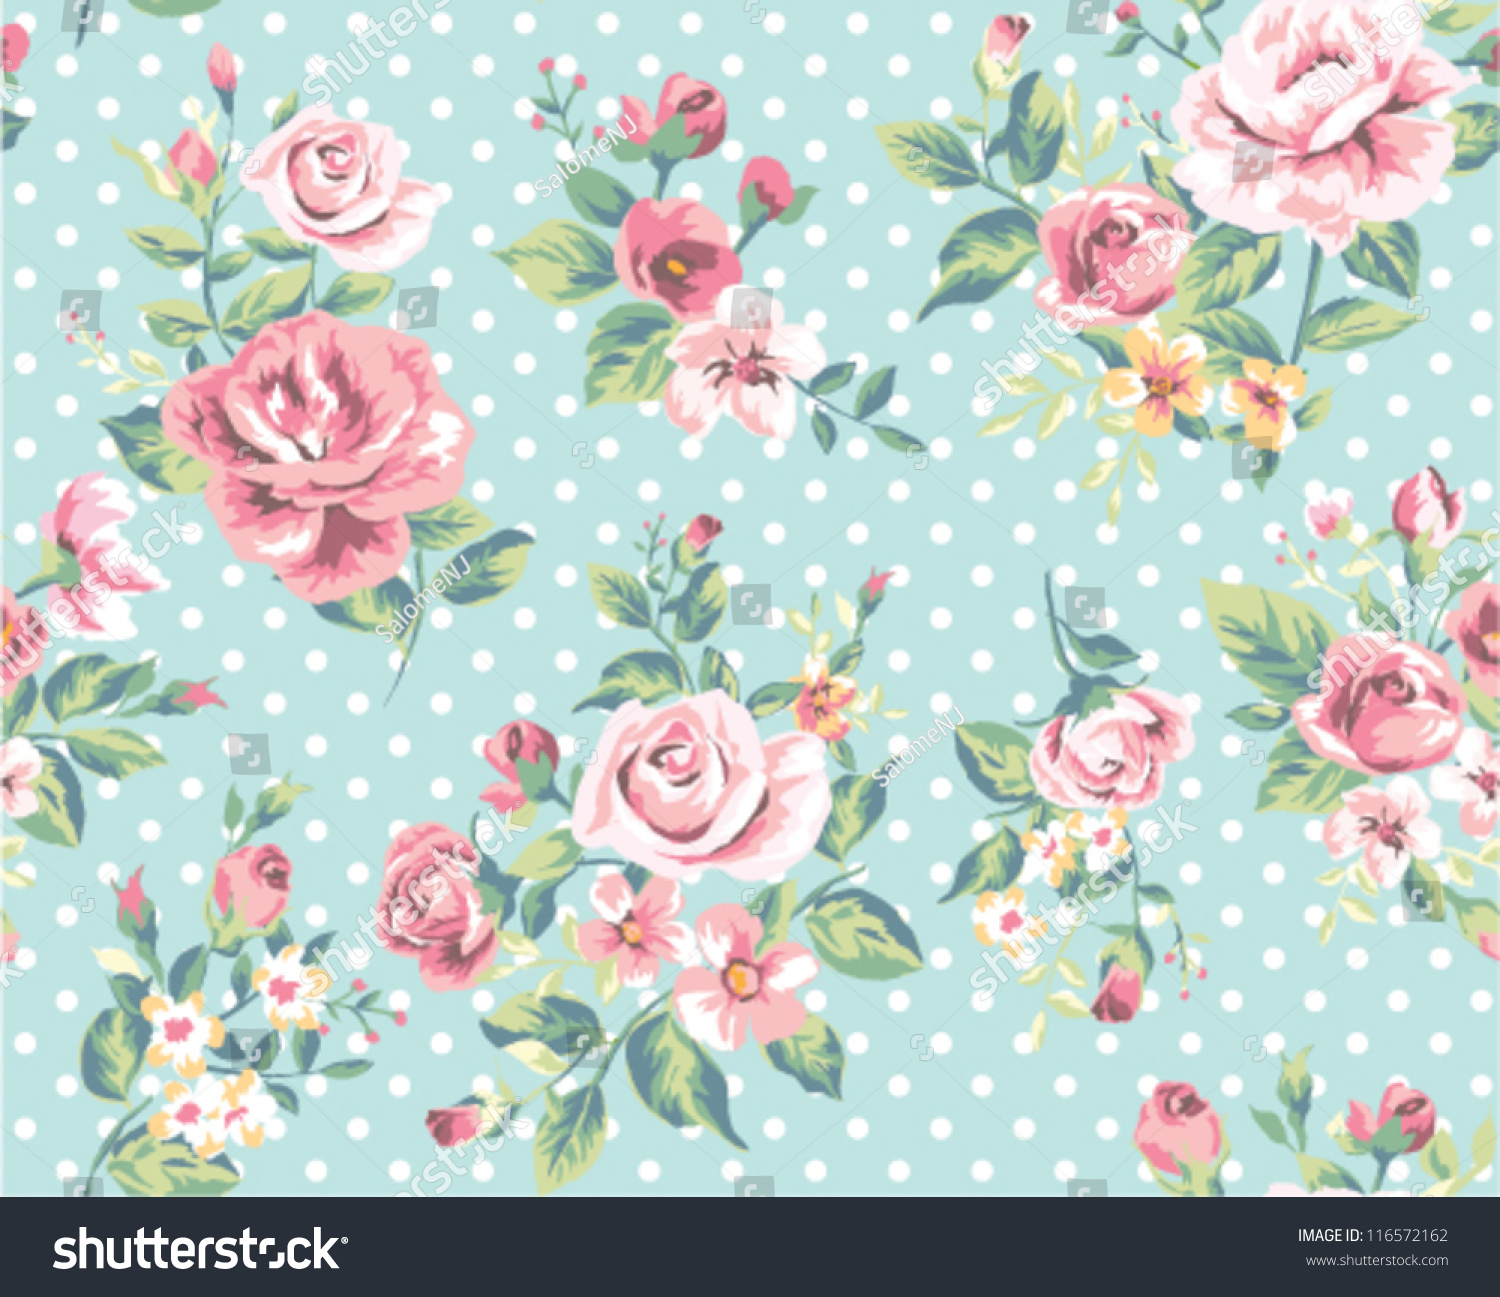 Wallpaper seamless vintage pink flower pattern stock vector wallpaper seamless vintage pink flower pattern on brown background mightylinksfo